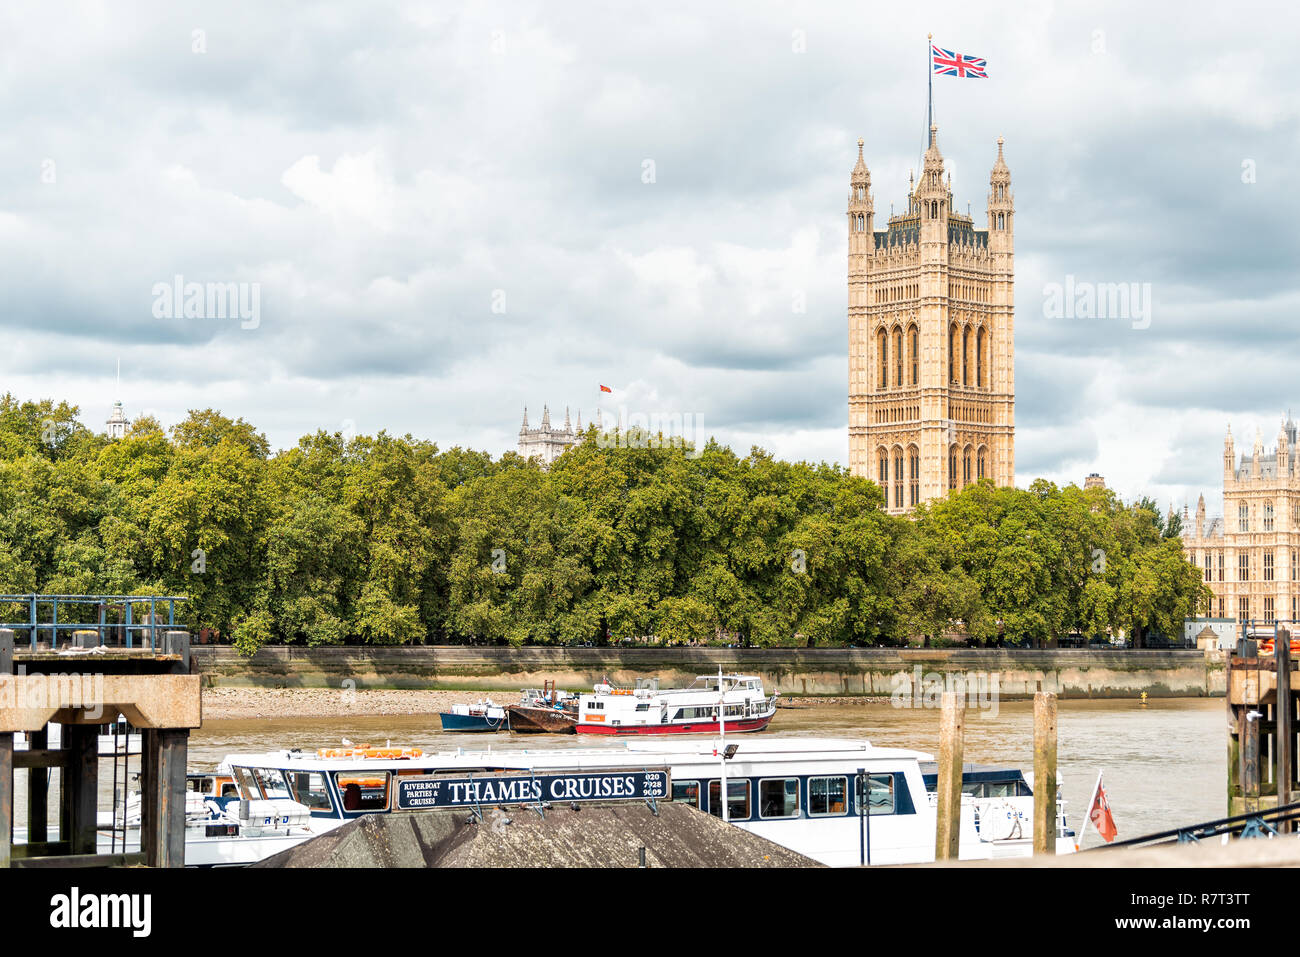 London, UK - September 14, 2018: Cityscape skyline of city with Thames River, Westminster during cloudy overcast autumn, cruises boat on Albert Embank - Stock Image